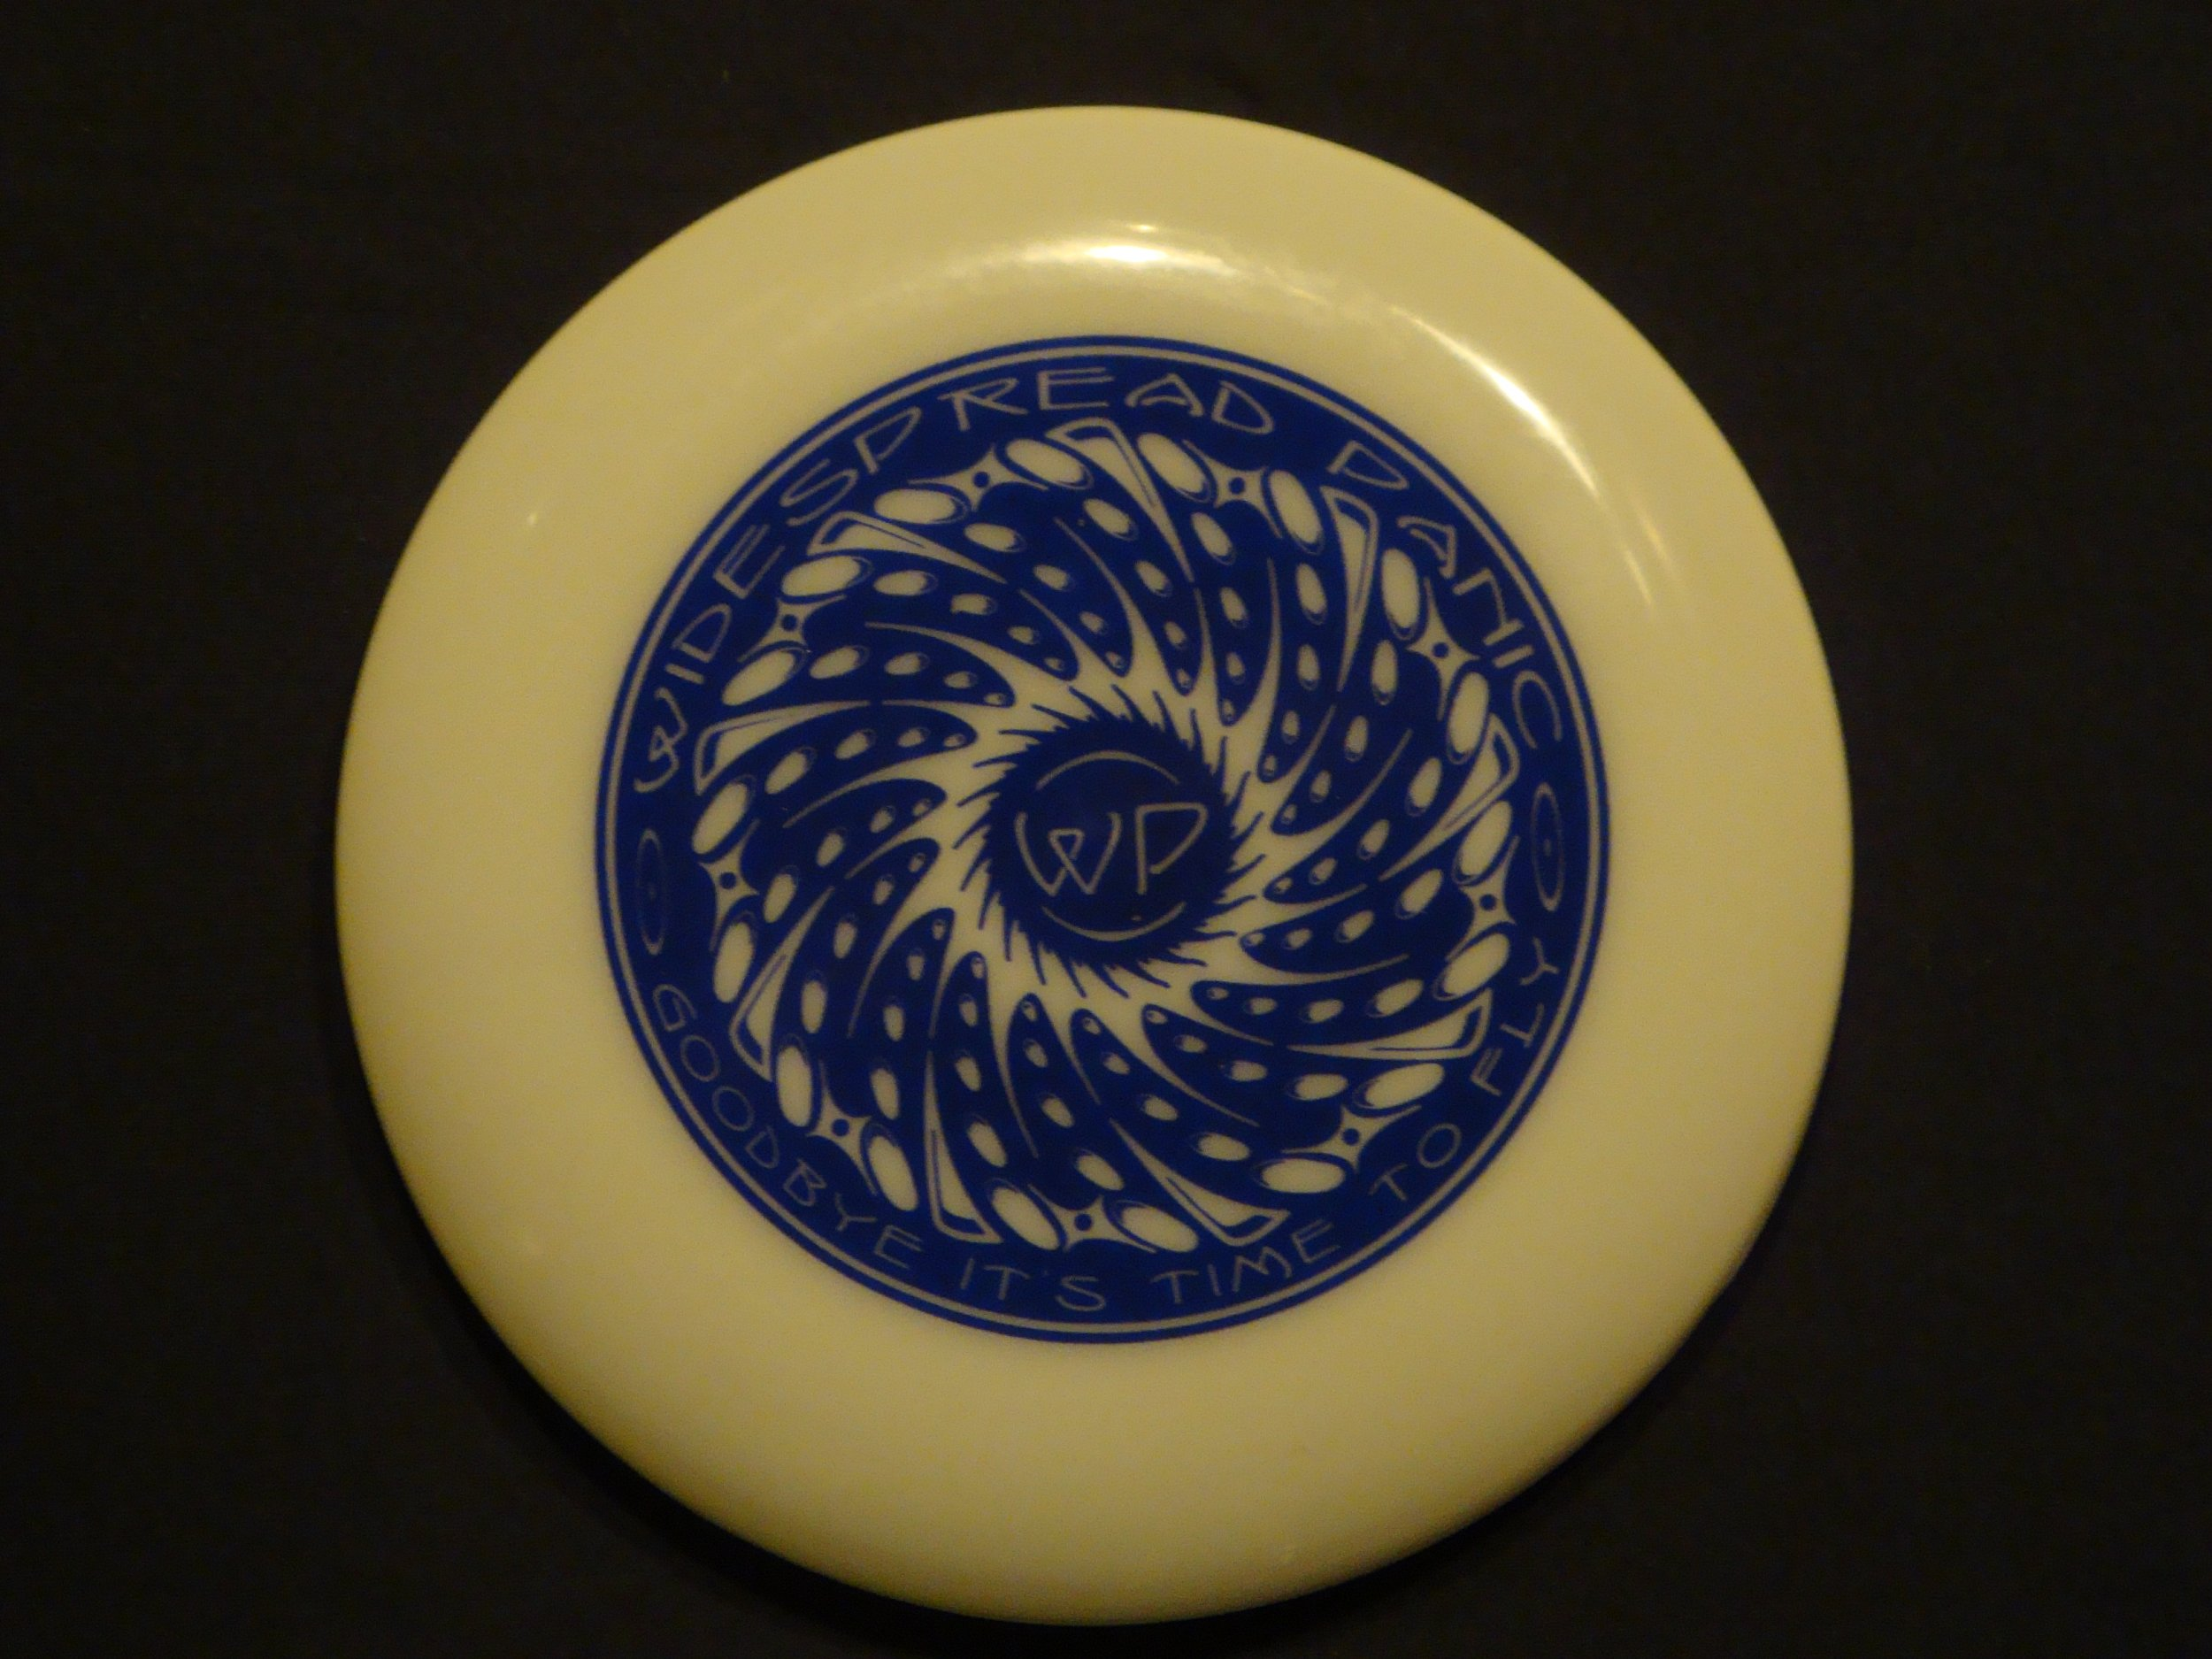 Widespread Panic 175gm Ultimate Glow Frisbee